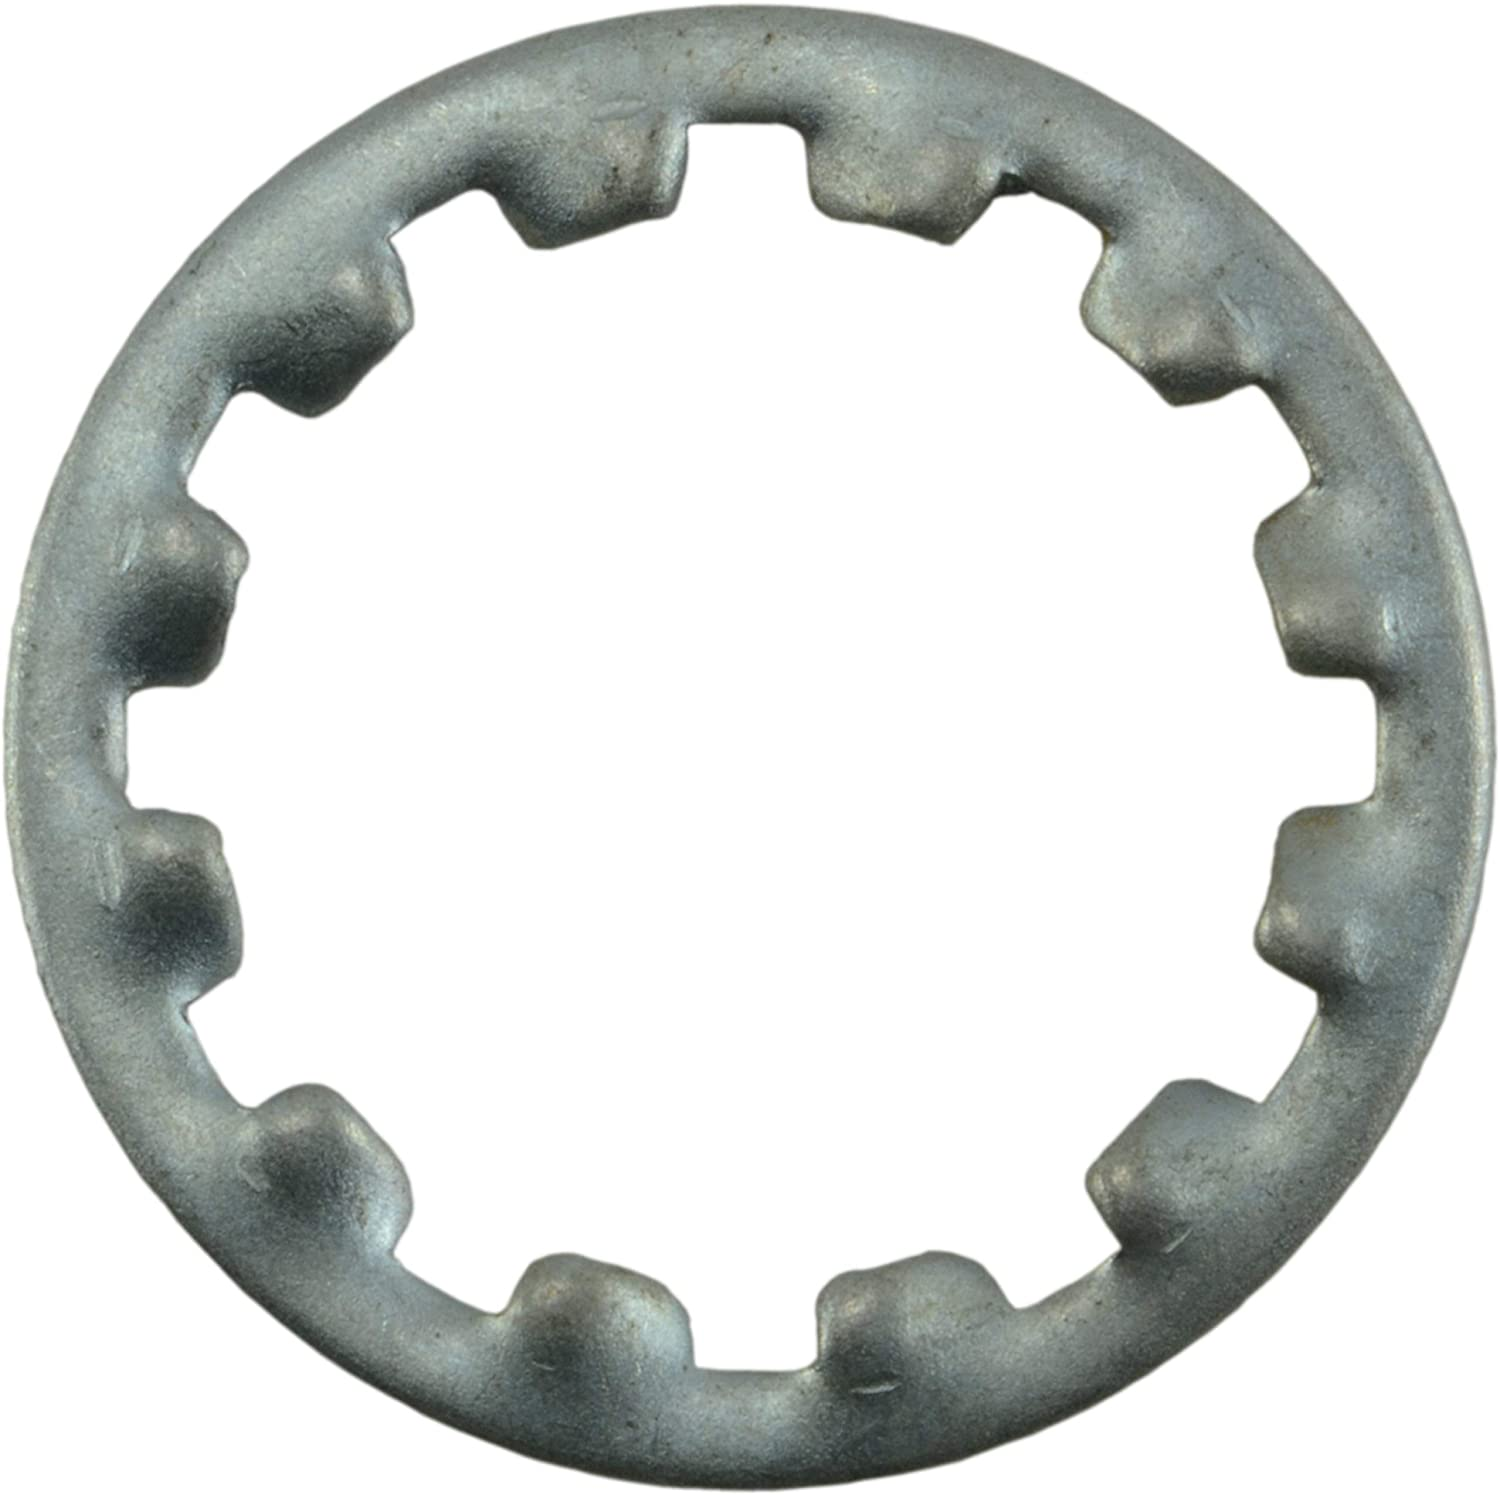 Hard-to-Find Fastener 014973180690 External Tooth Lock Washers Piece-12 3//8